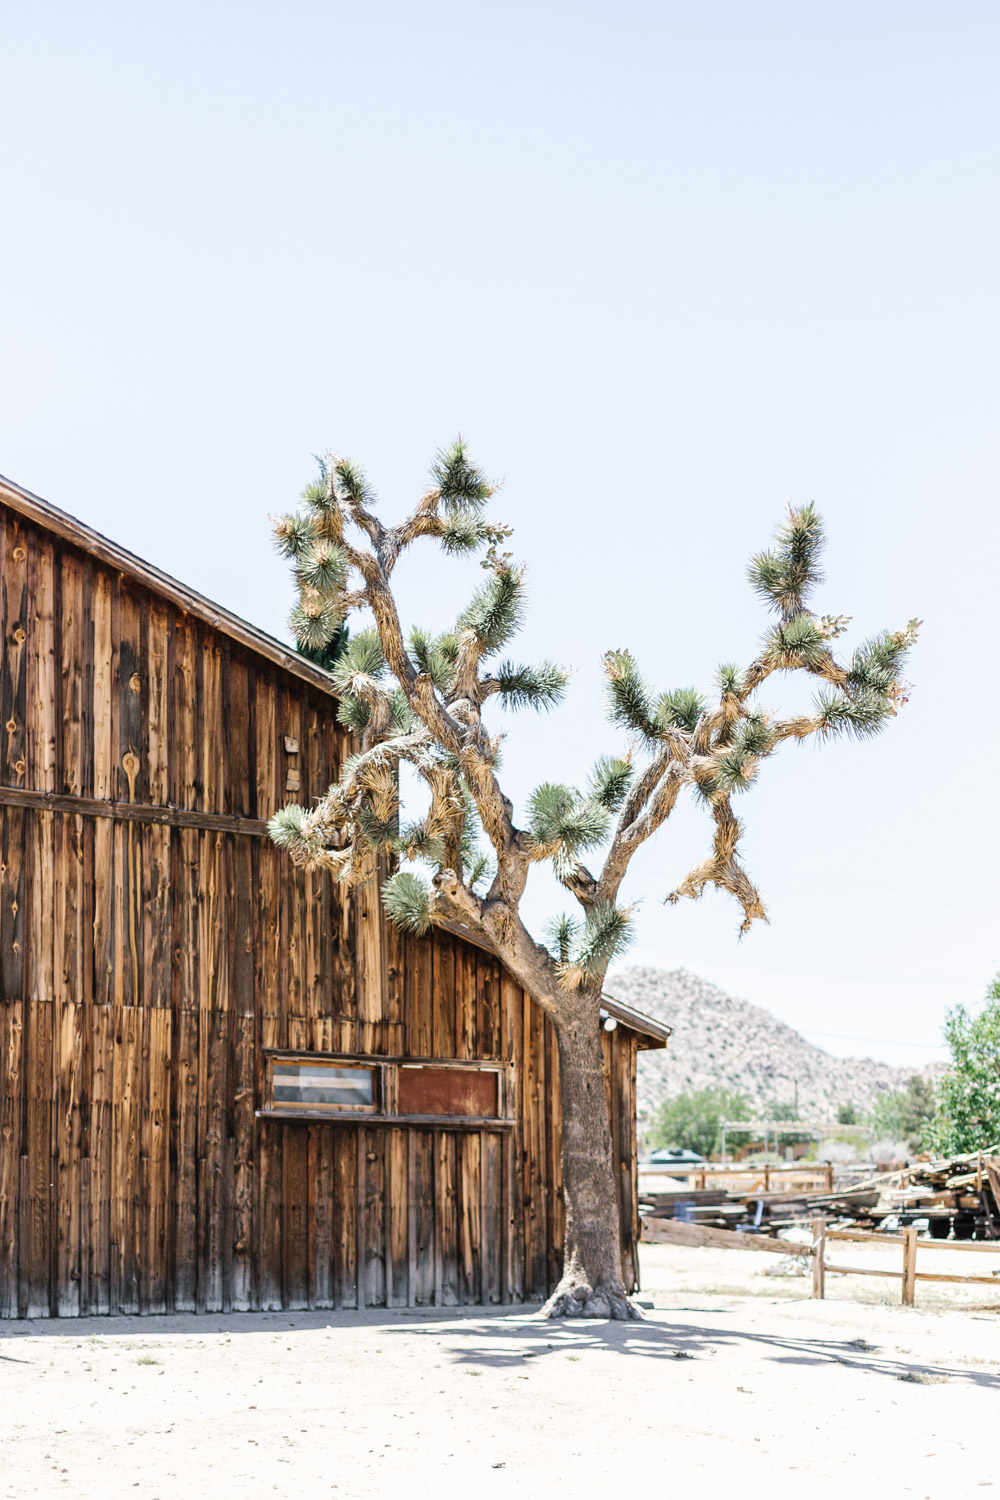 Marnie Hawson Melbourne   travel photographer, Pioneertown CA